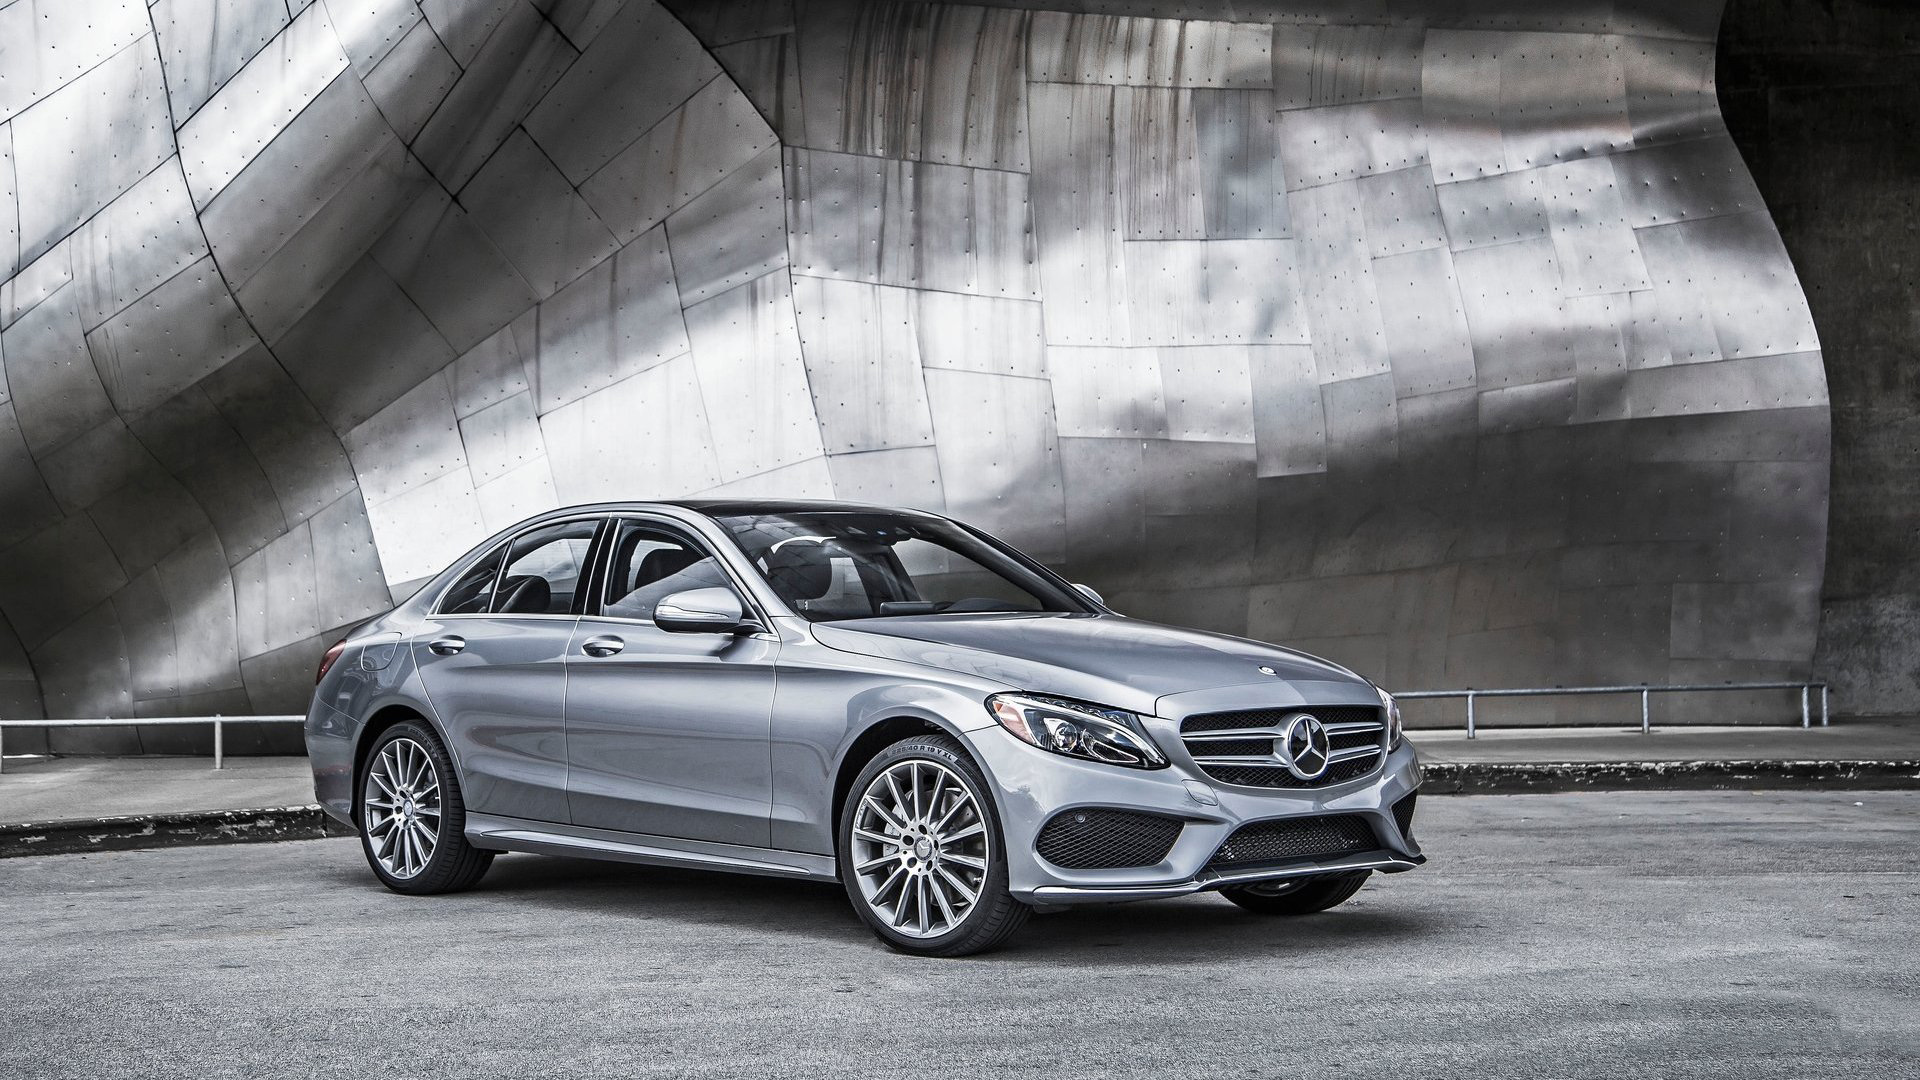 Mercedes benz c class 2015 wallpapers for Benz mercedes c class